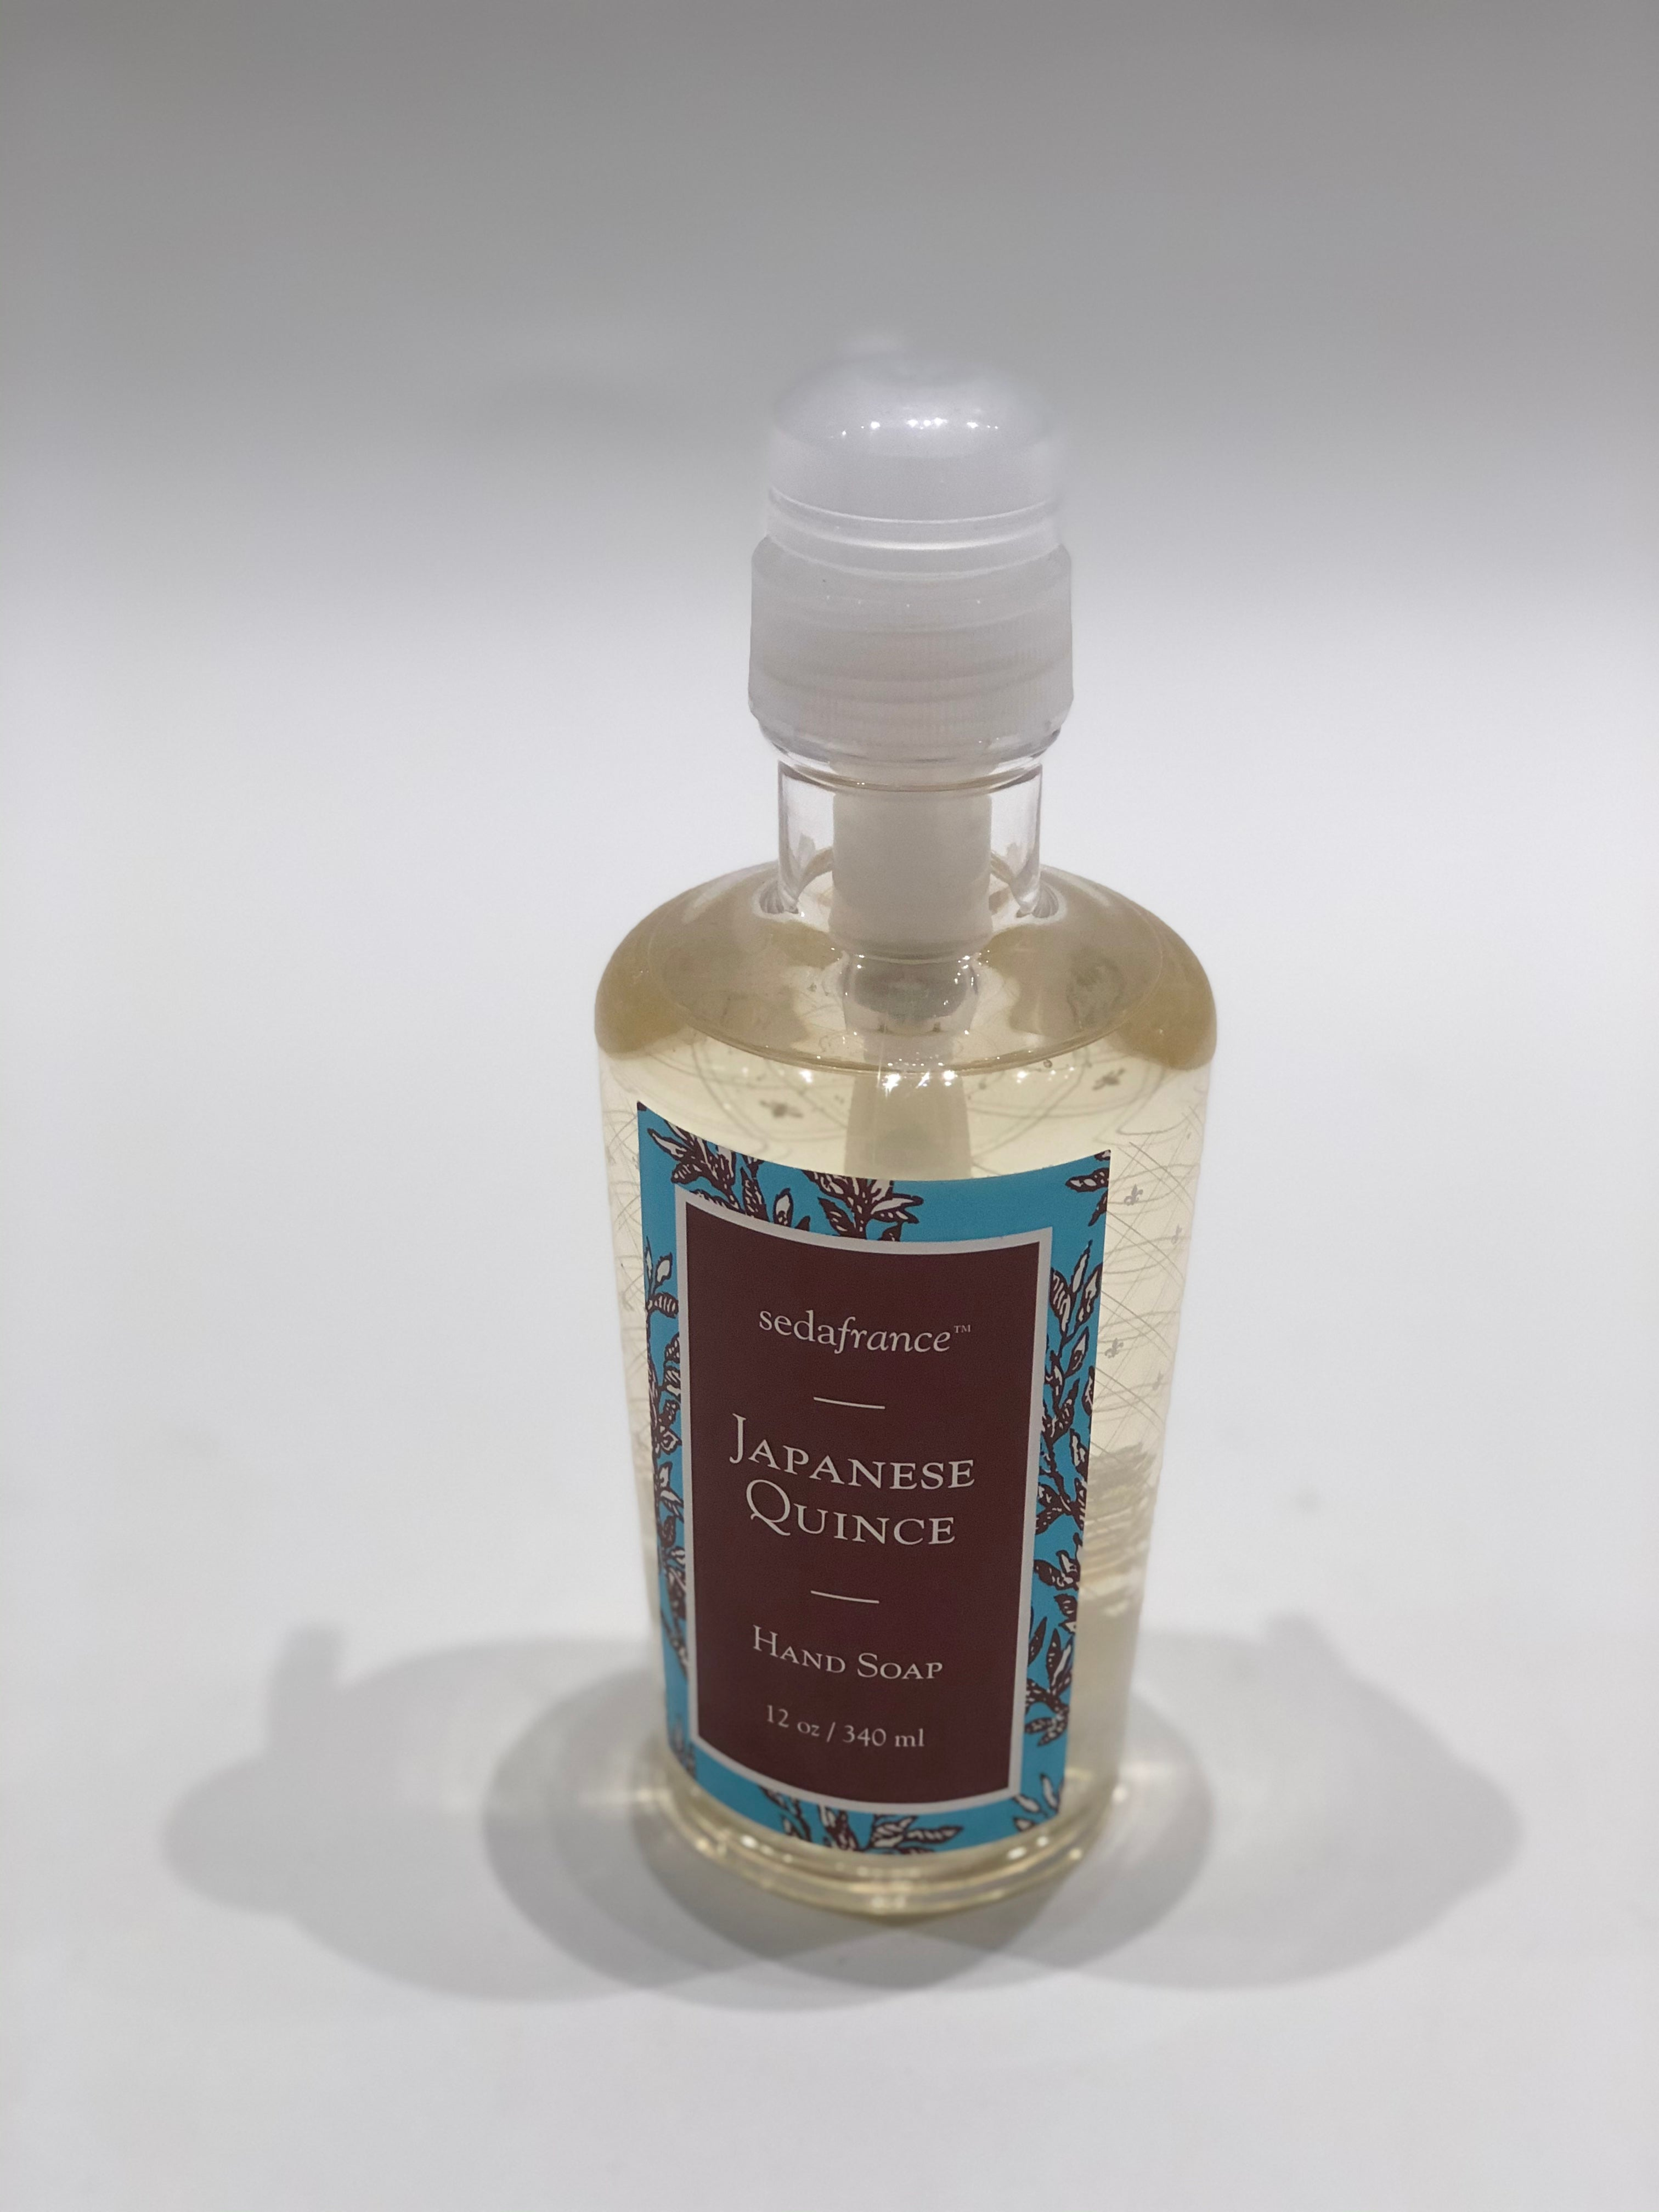 Seda France Hand Soap Japanese Quince